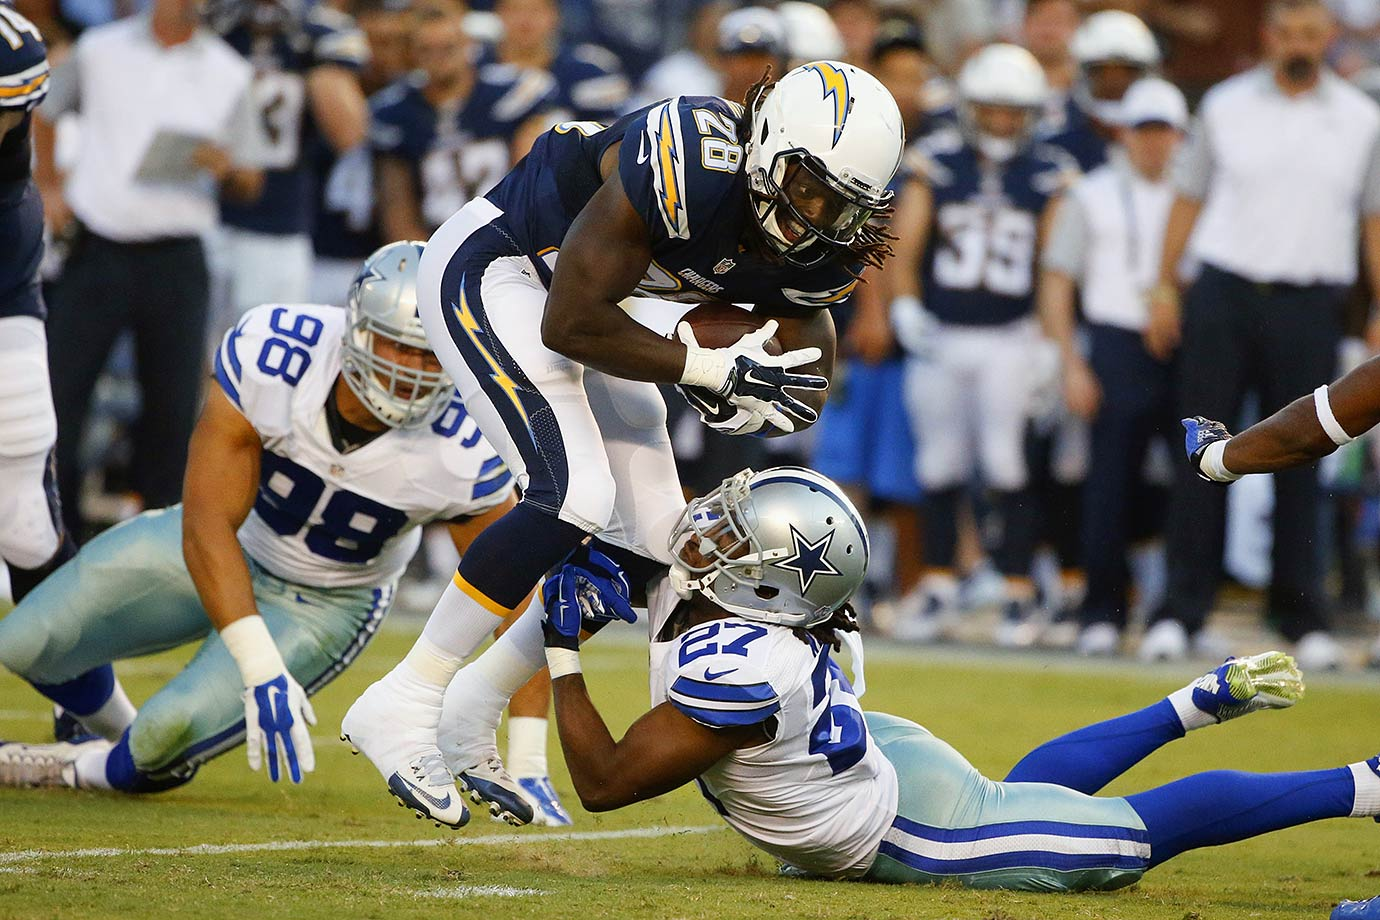 San Diego is ready for Melvin Gordon III to recharge this rushing offense now that Ryan Mathews has moved on to Philadelphia. The defense and the road-grading running back from Wisconsin should provide solid production, but the passing game needs some help, especially with Antonio Gates suspended for four games. That's asking an awful lot from MGIII.